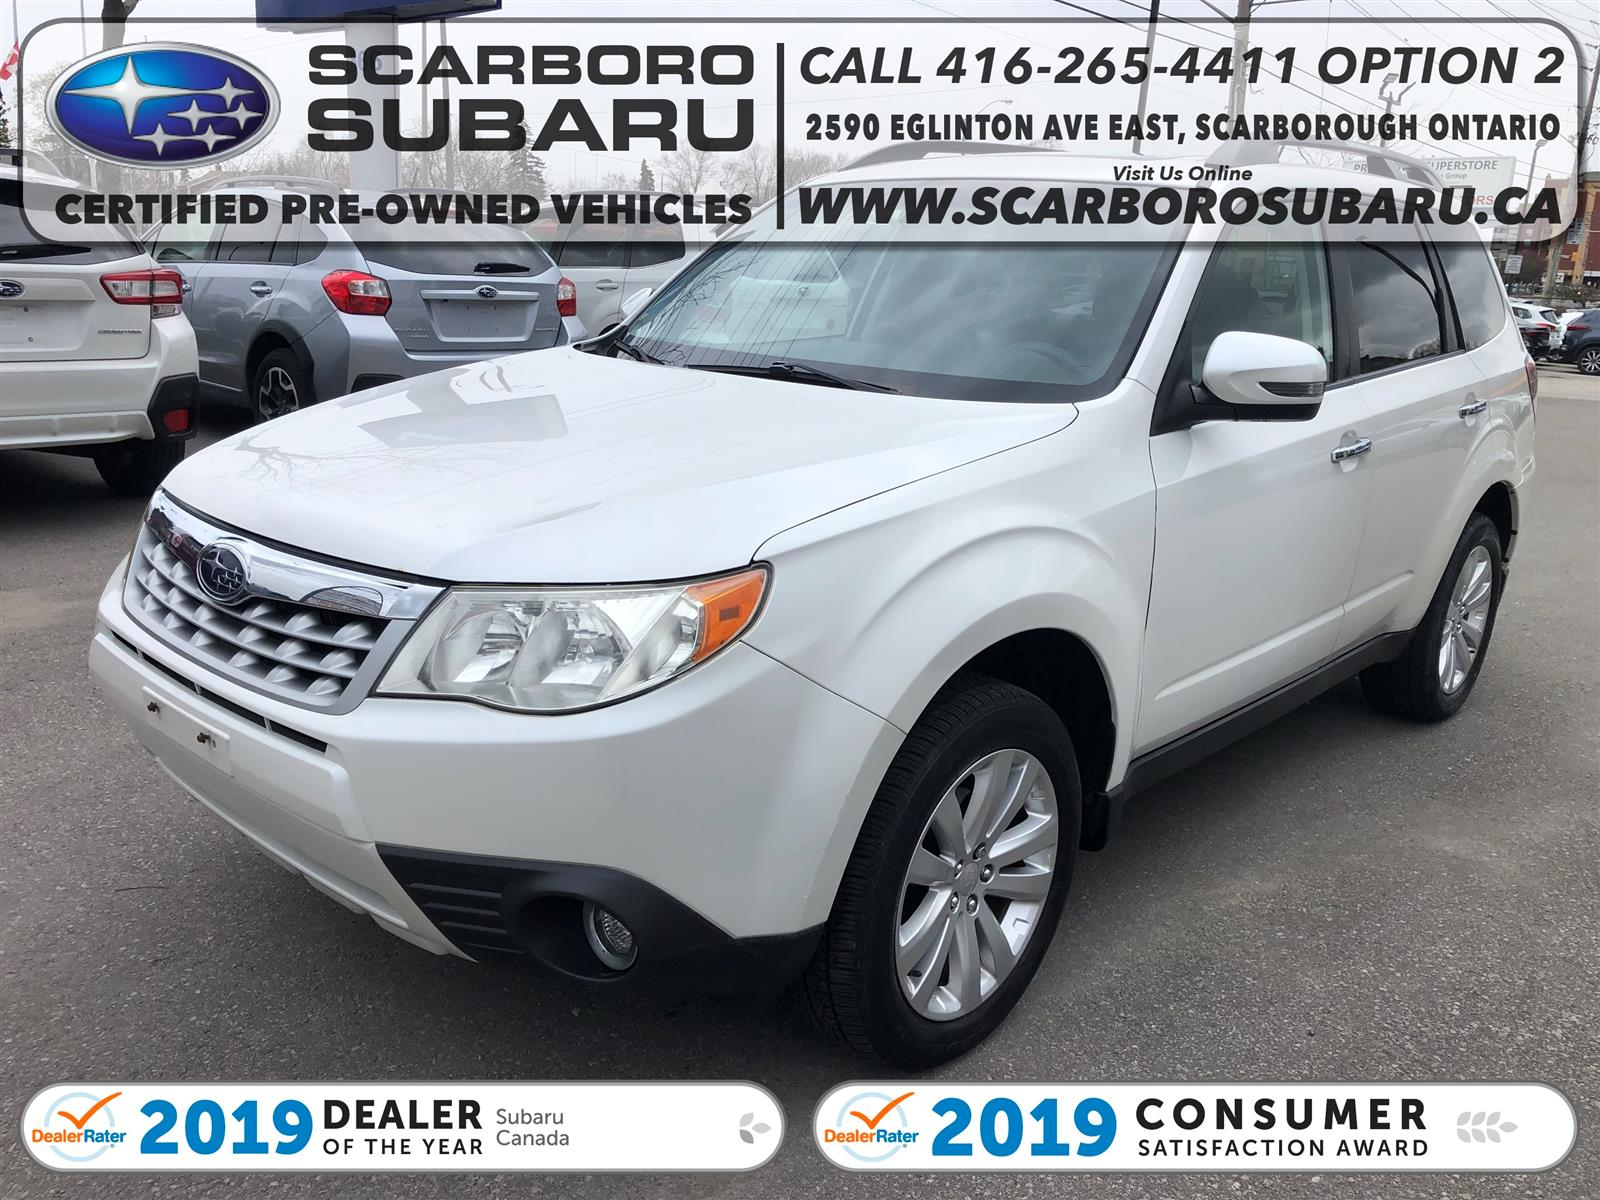 used 2012 Subaru Forester car, priced at $10,995